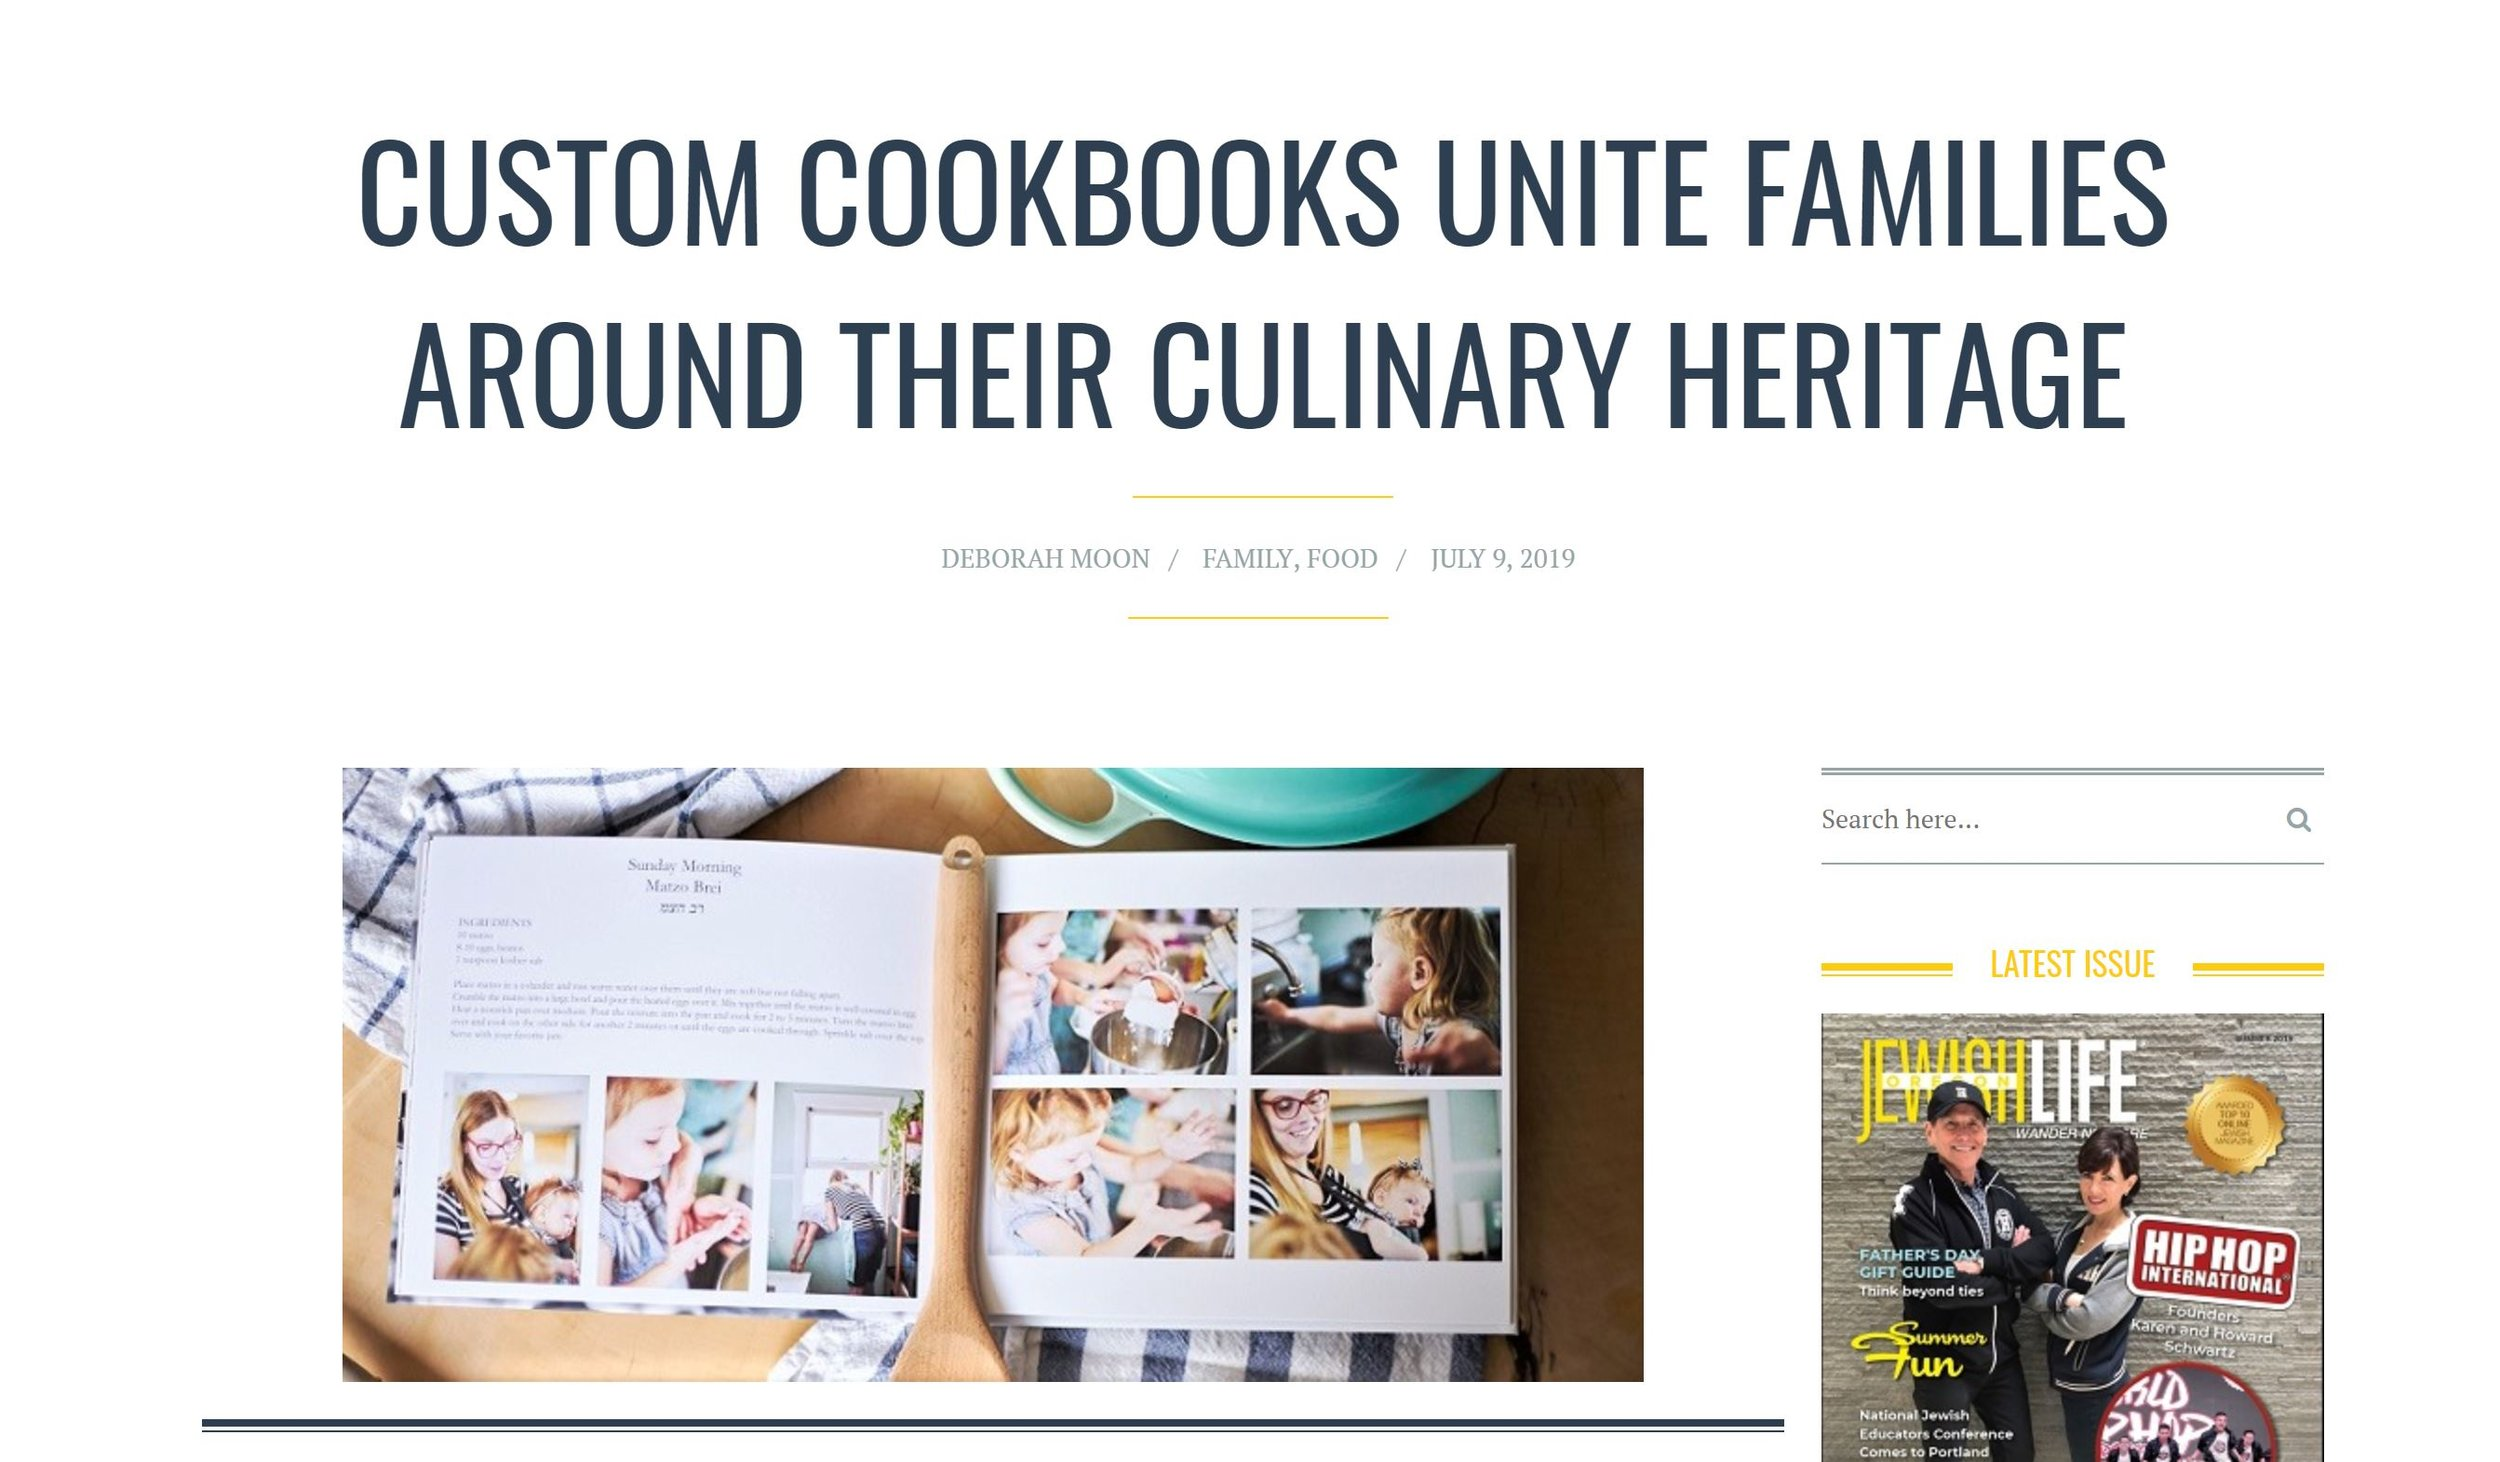 The Family Cookbook Custom Family Cookbooks